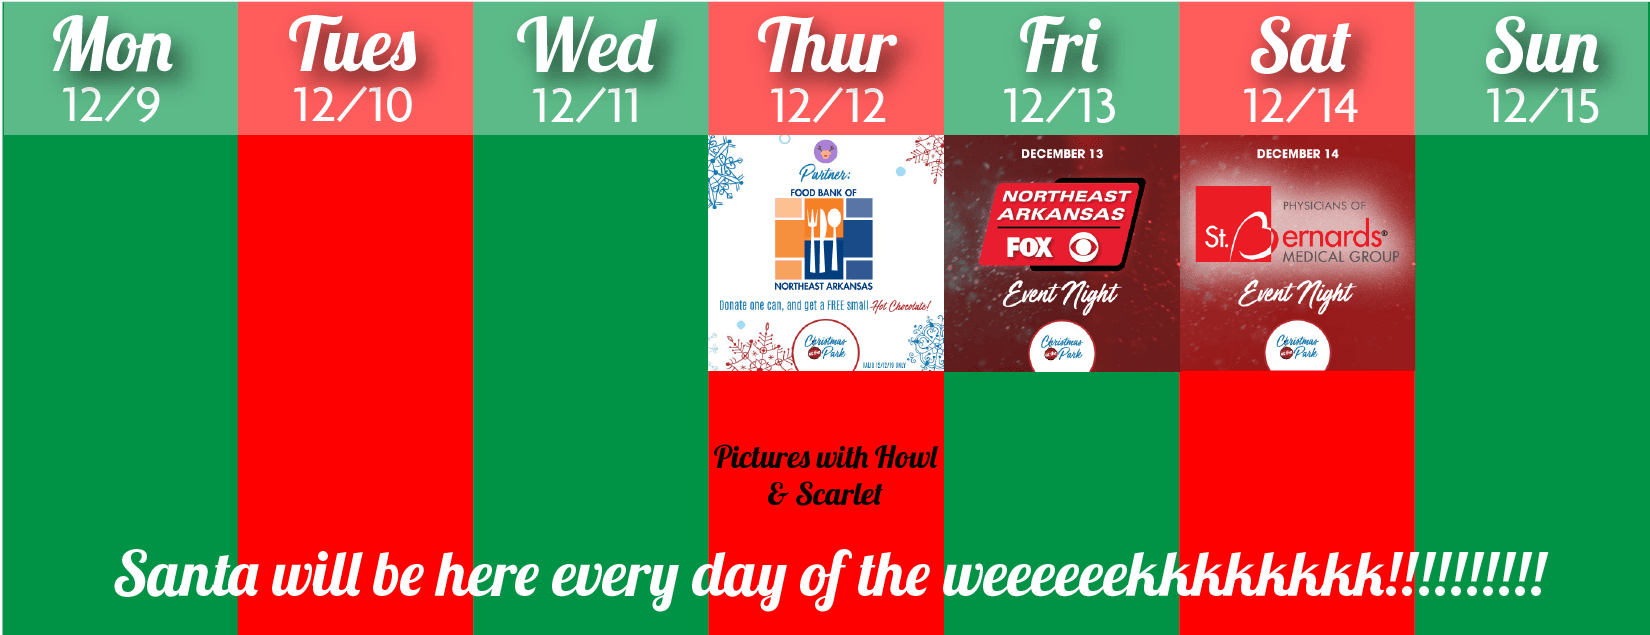 Christmas at the Park schedule for the week of december 9th through 15th; santa will be there all we